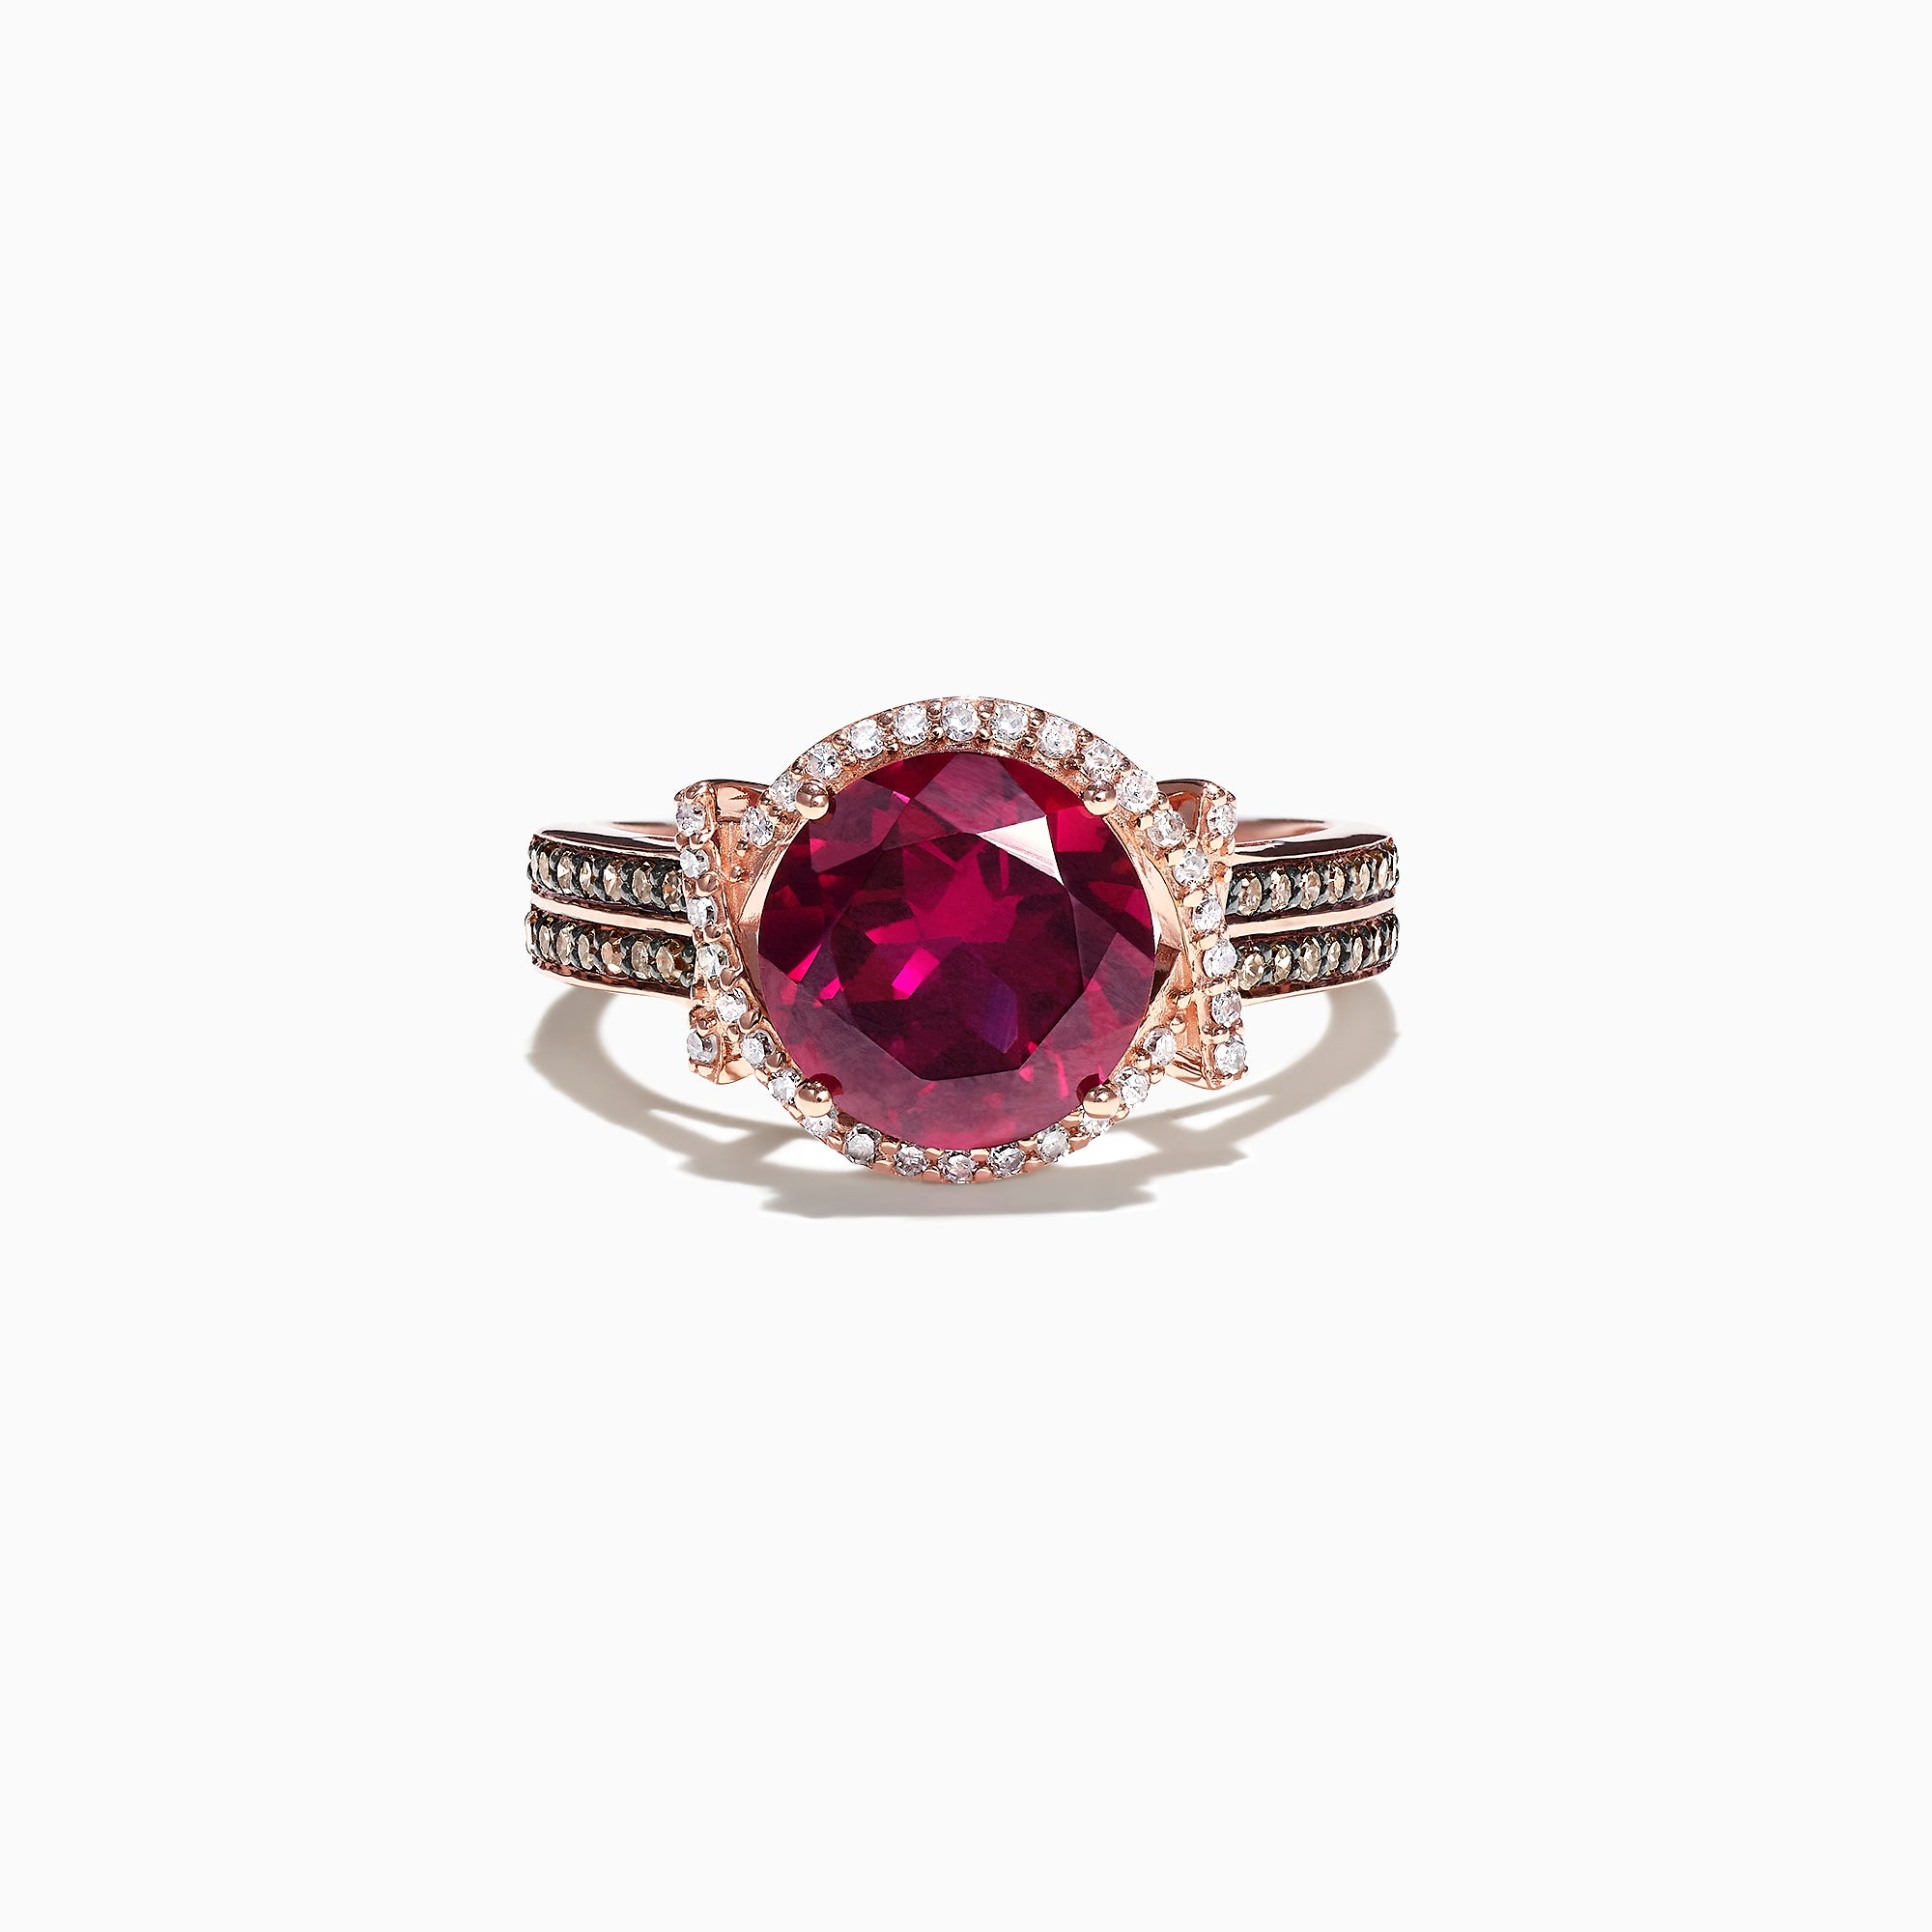 Effy 14K Rose Gold Rhodolite Garnet and Diamond Ring, 2.51 TCW